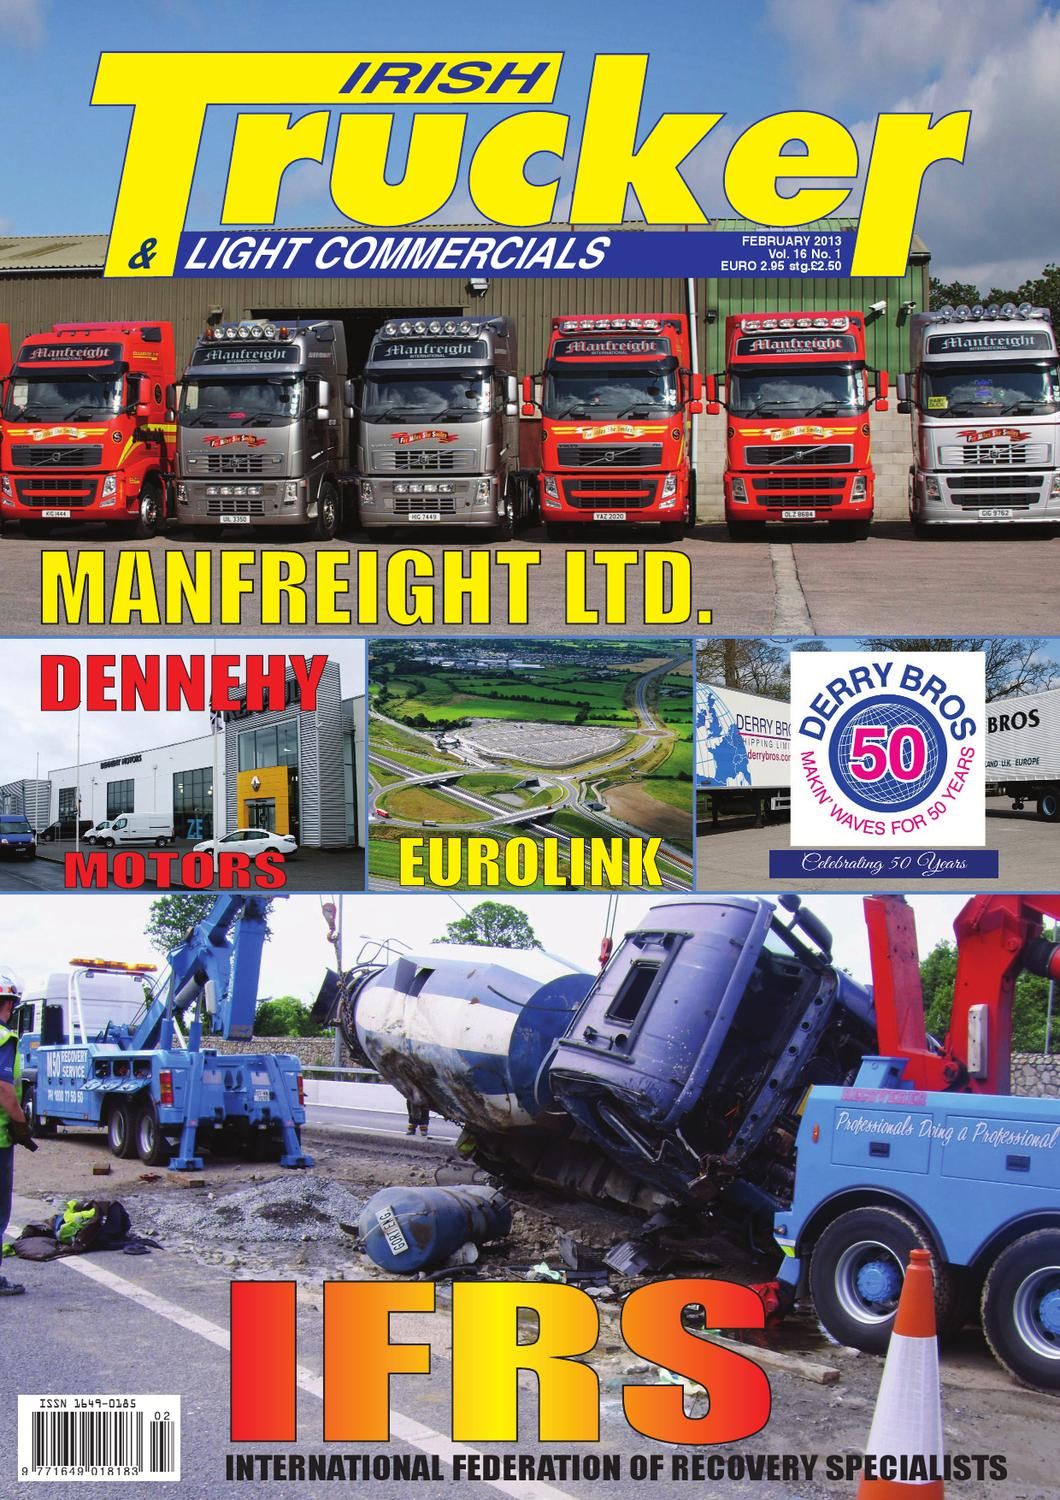 Finding The Right Insurance Company For Your Haulage Business